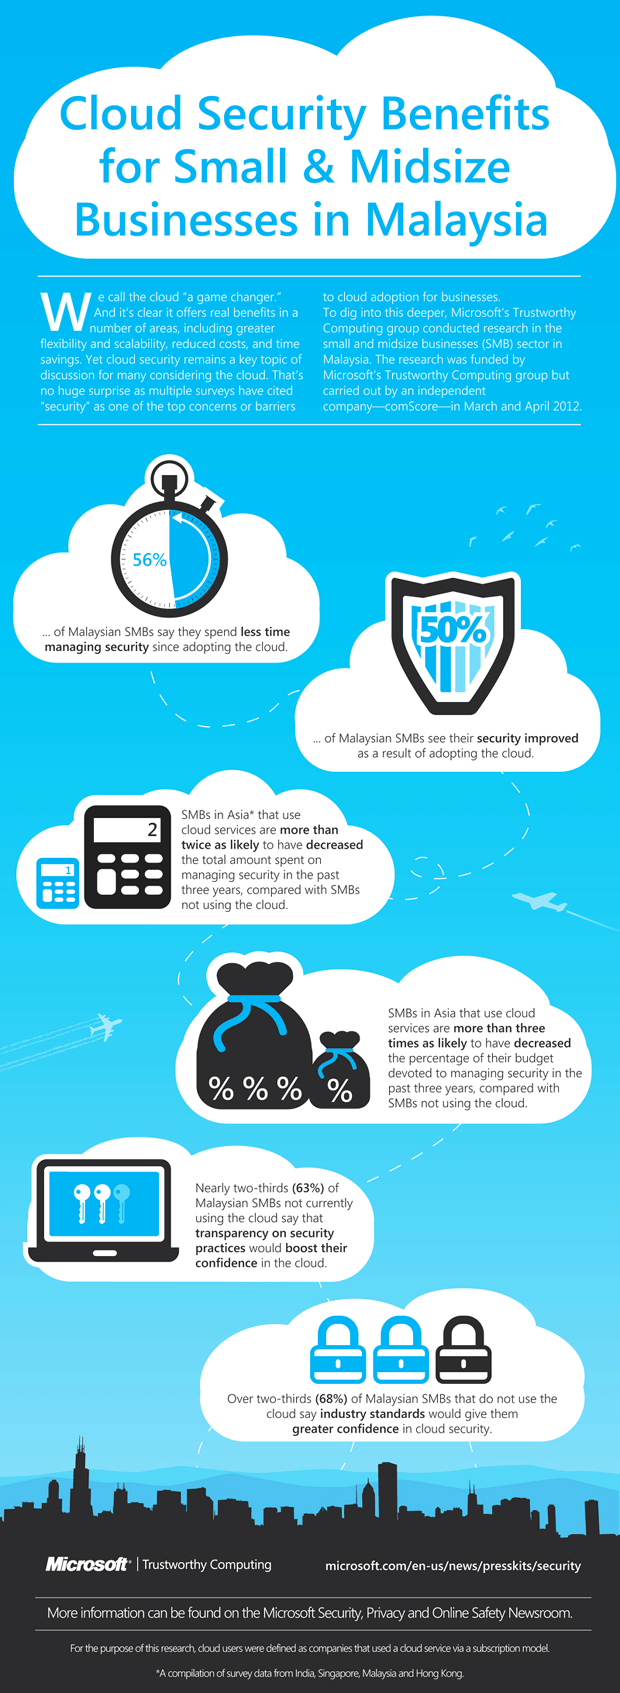 microsoft cloud security infographic